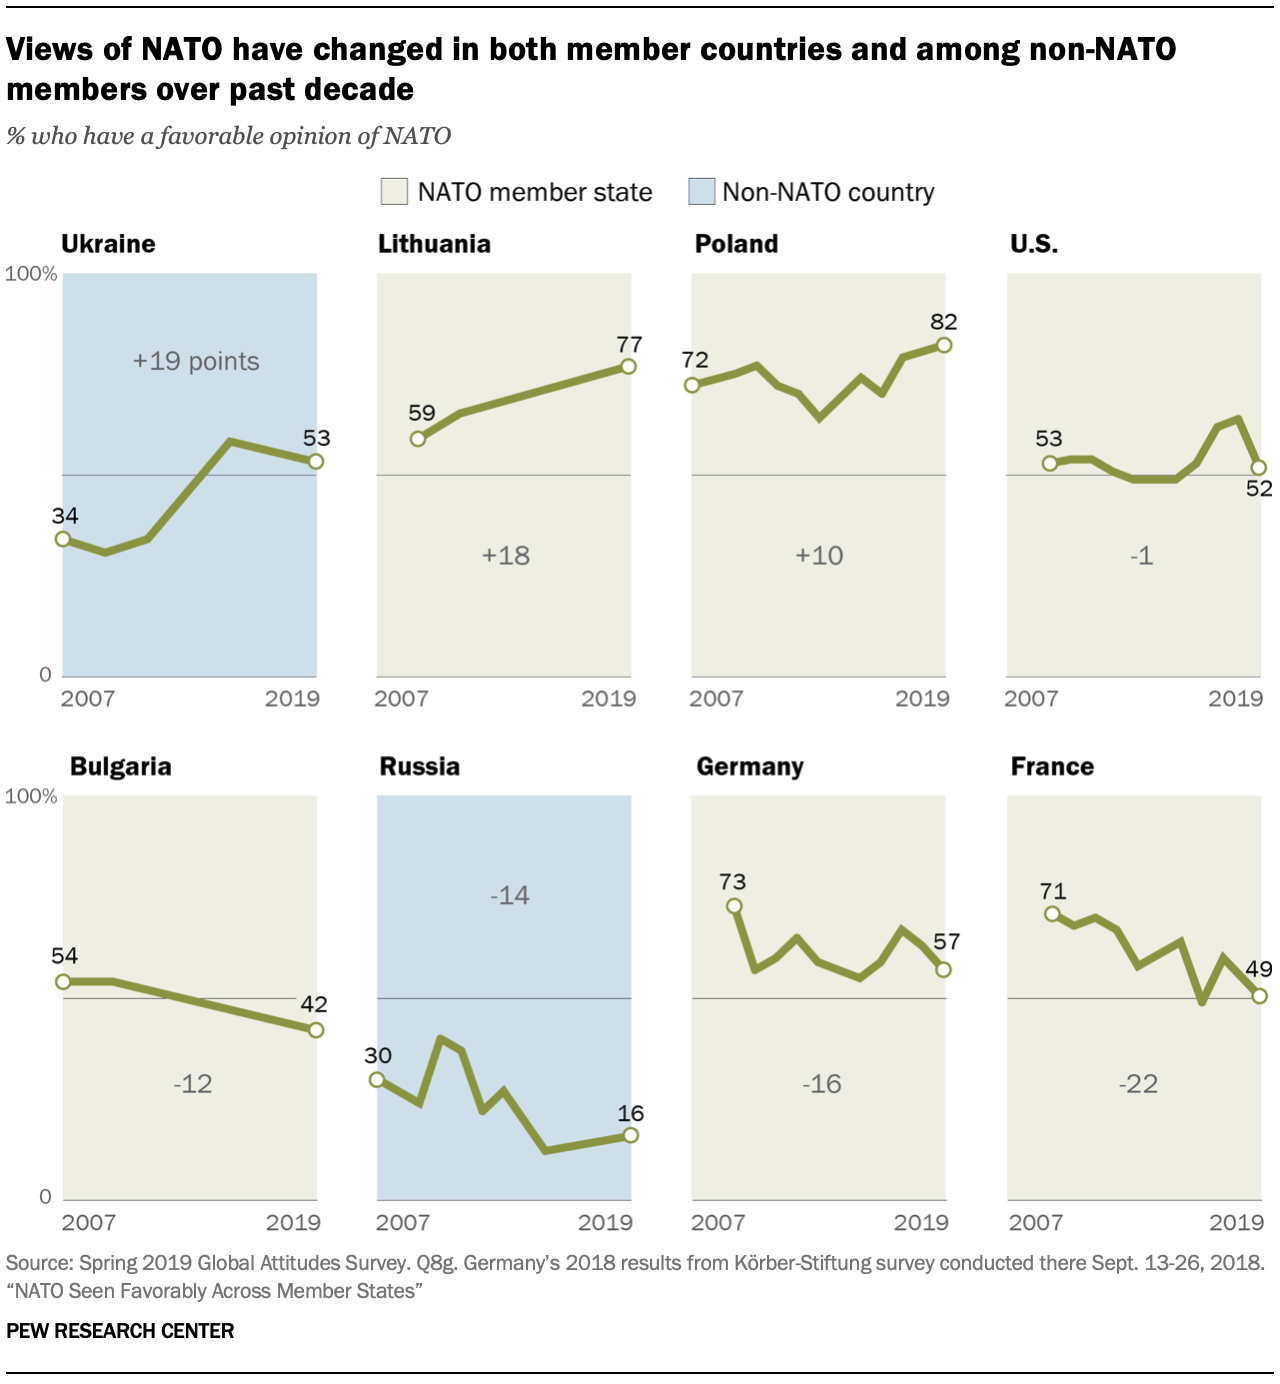 A chart showing views of NATO have changed in both member countries and among non-NATO members over past decade